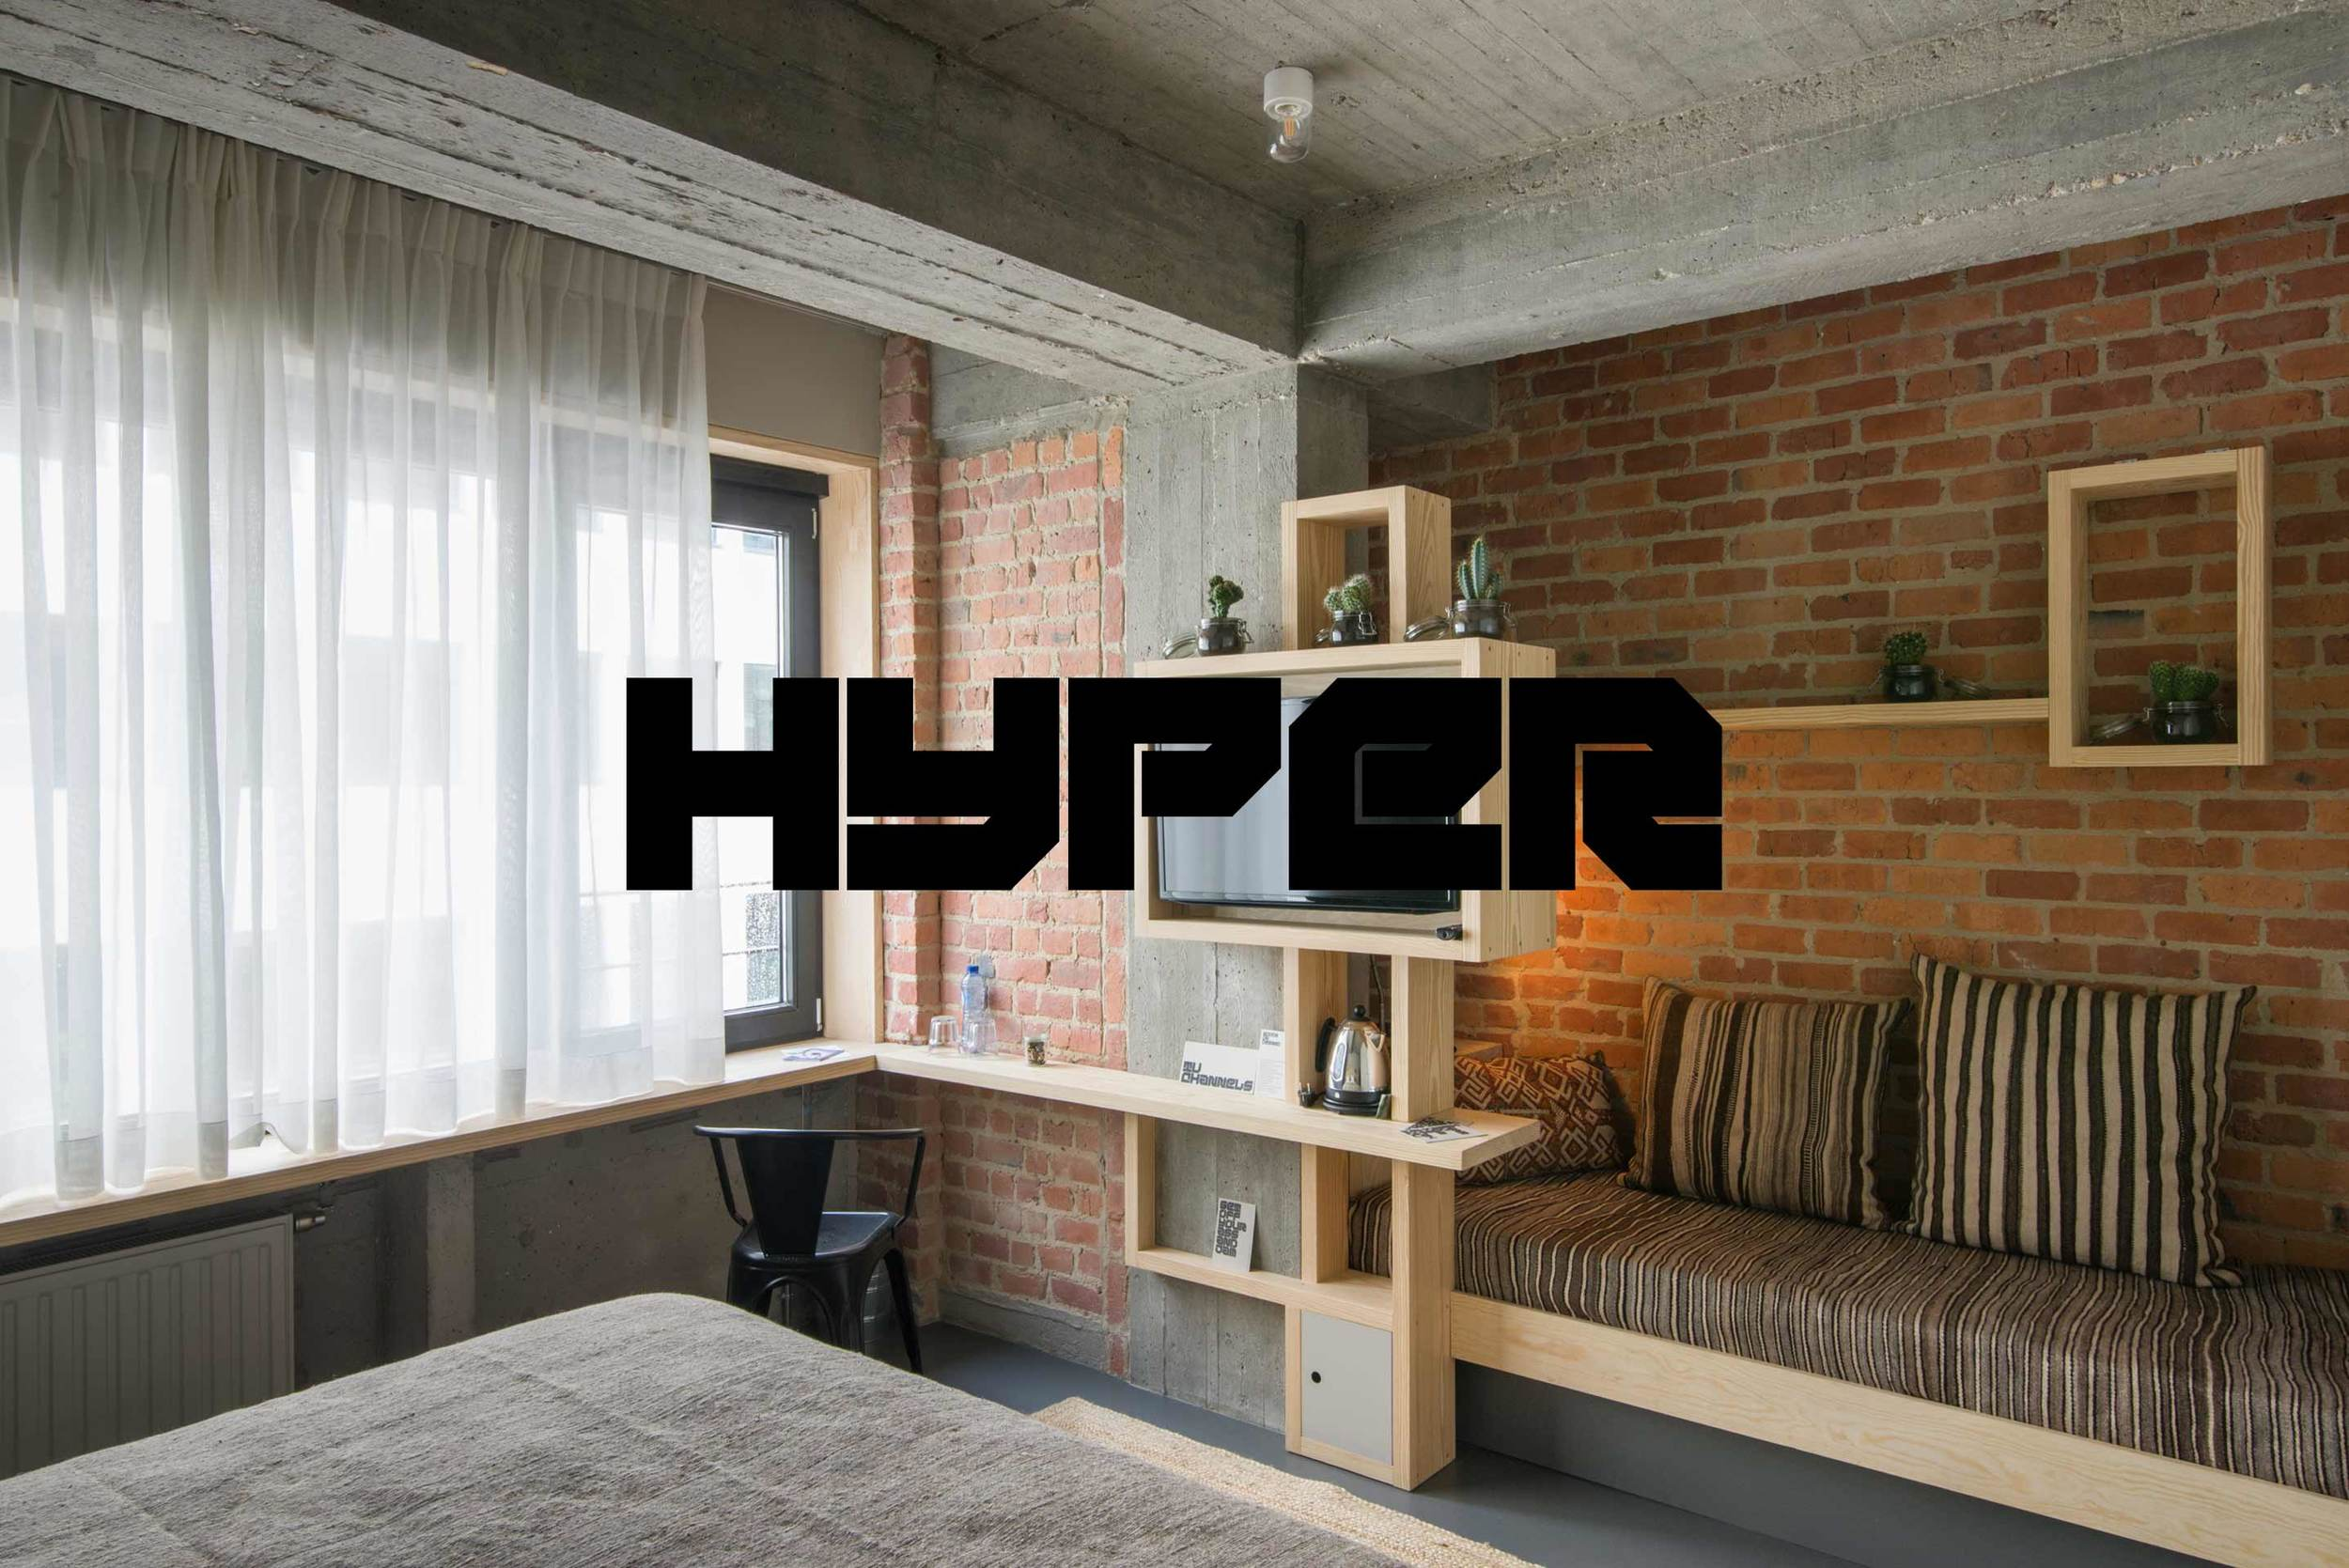 jam-hotel-brussels-rooms-hyper-room.jpg